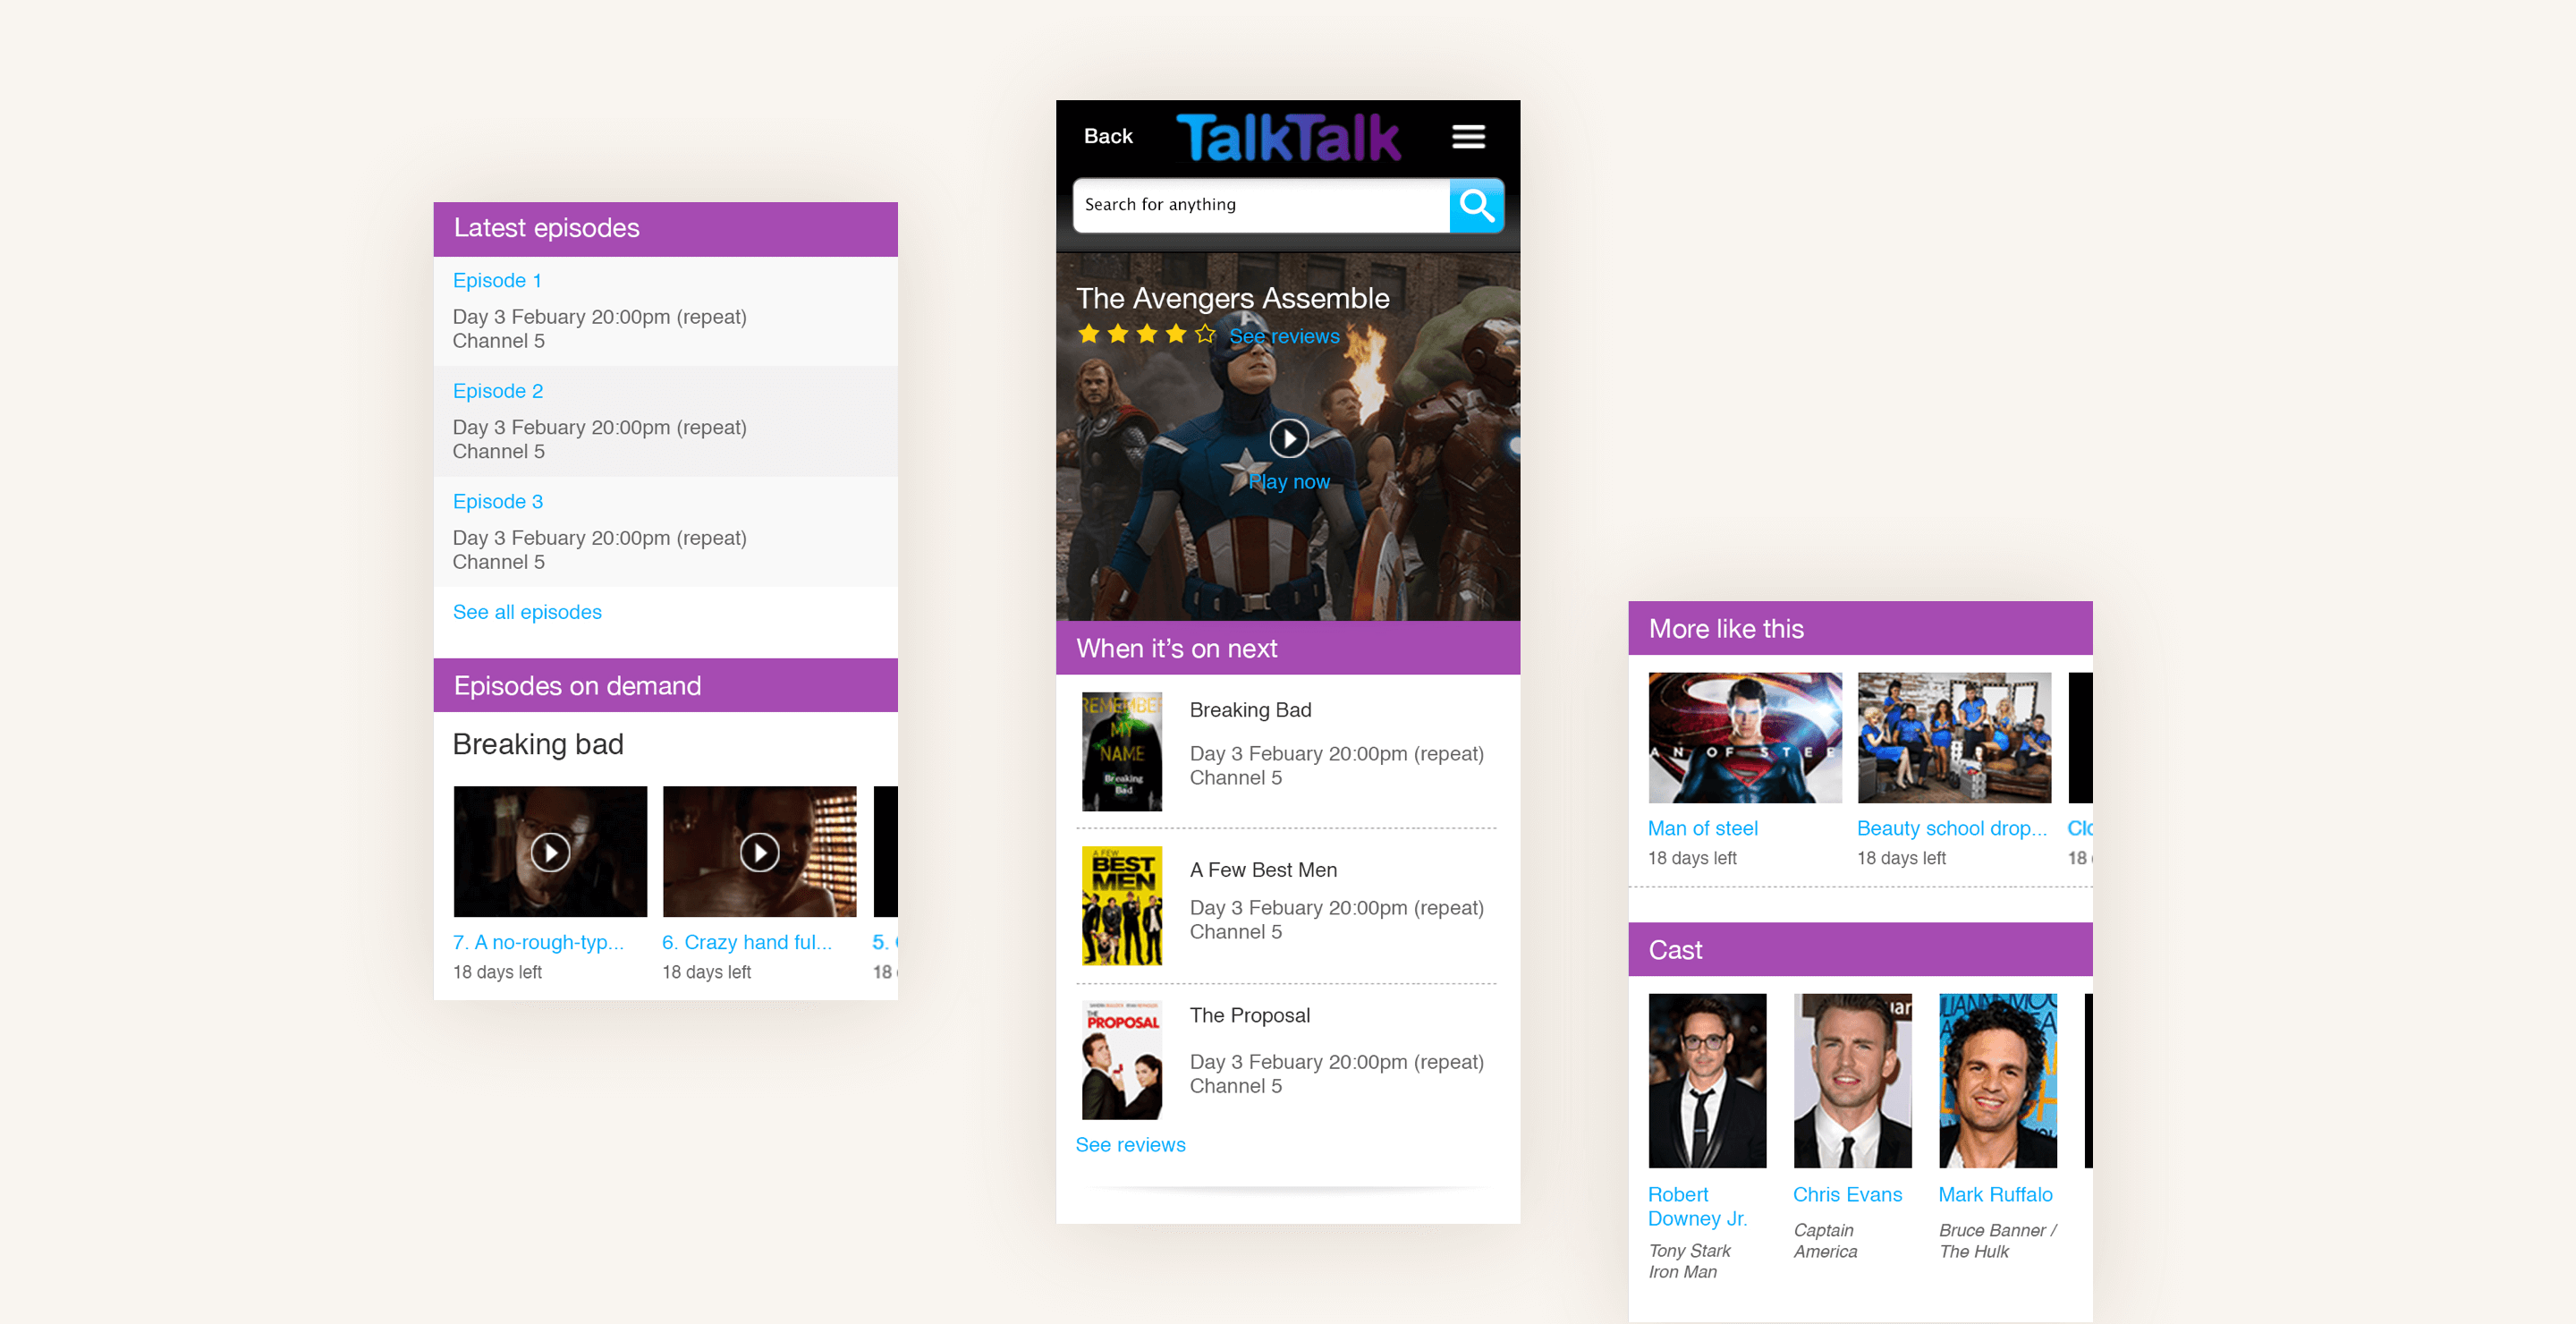 mobile-views-of-talktalk